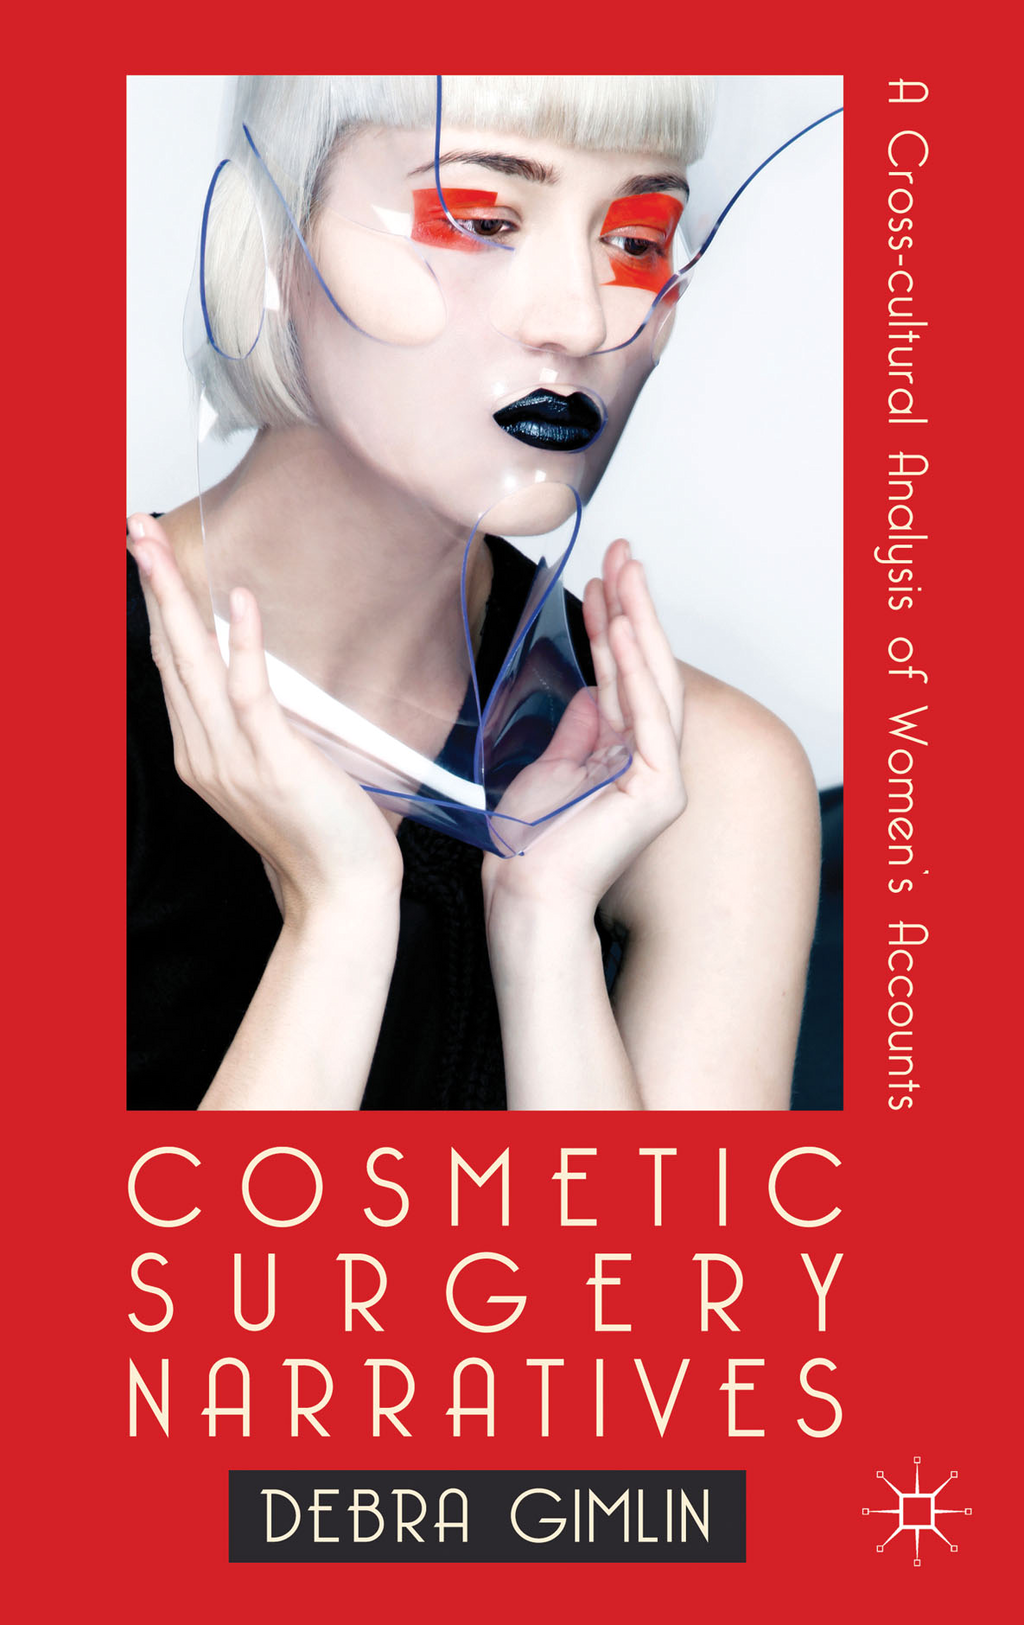 Cosmetic Surgery Narratives A Cross-Cultural Analysis of Women's Accounts